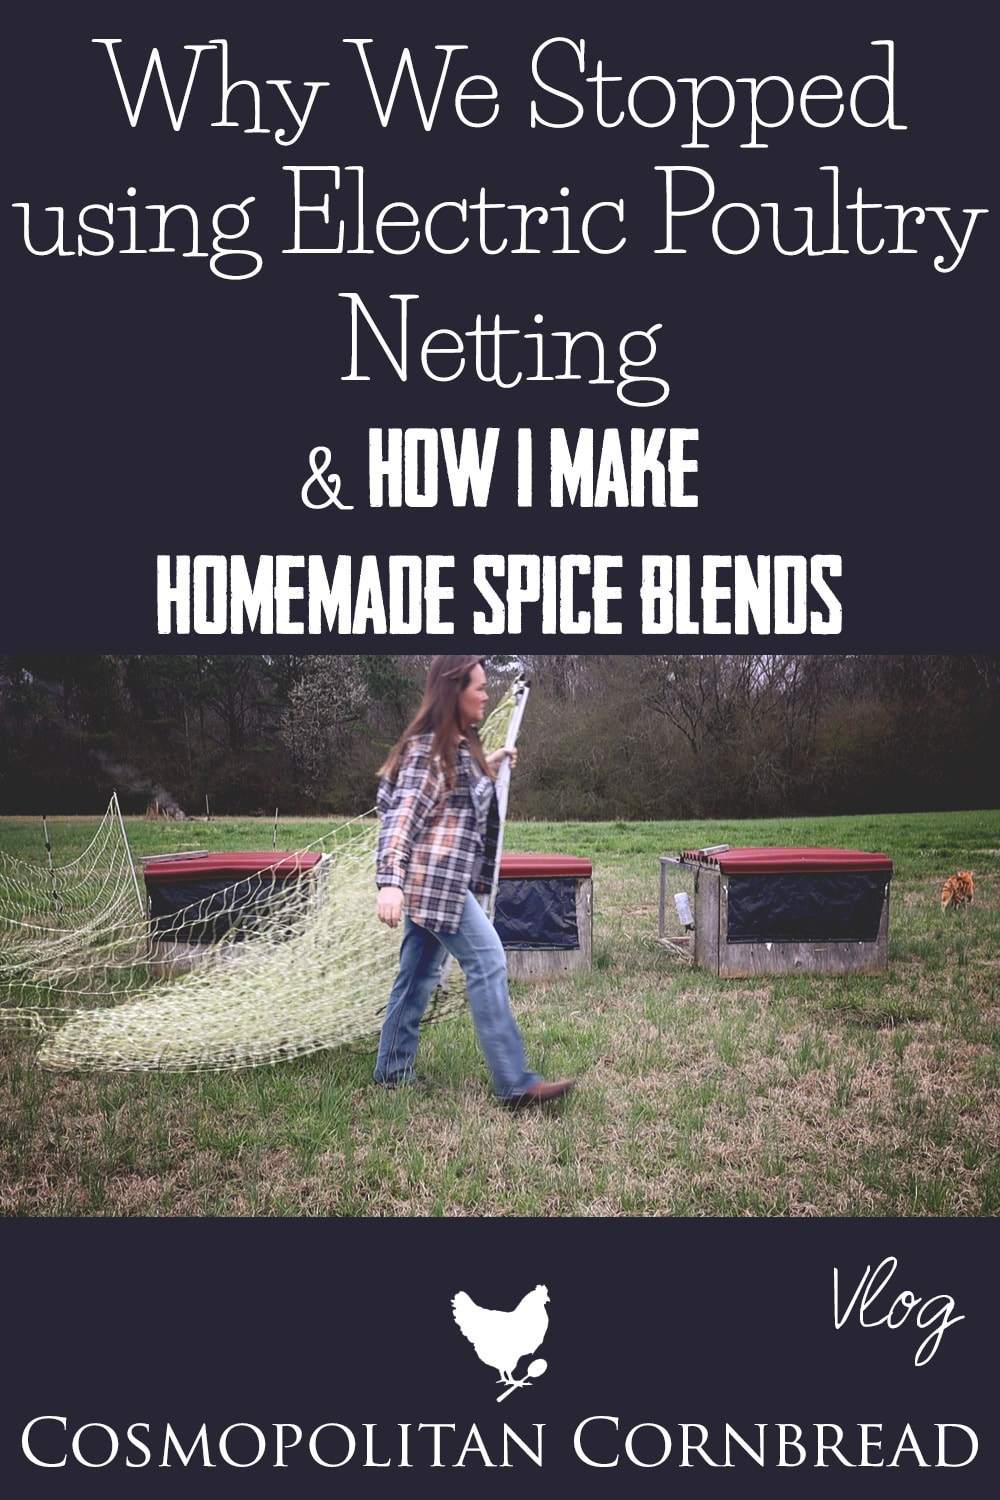 In this episode, I shared how I make my own spice blends from dried peppers and herbs, and why we stopped using the electric poultry netting/fencing for our chickens.